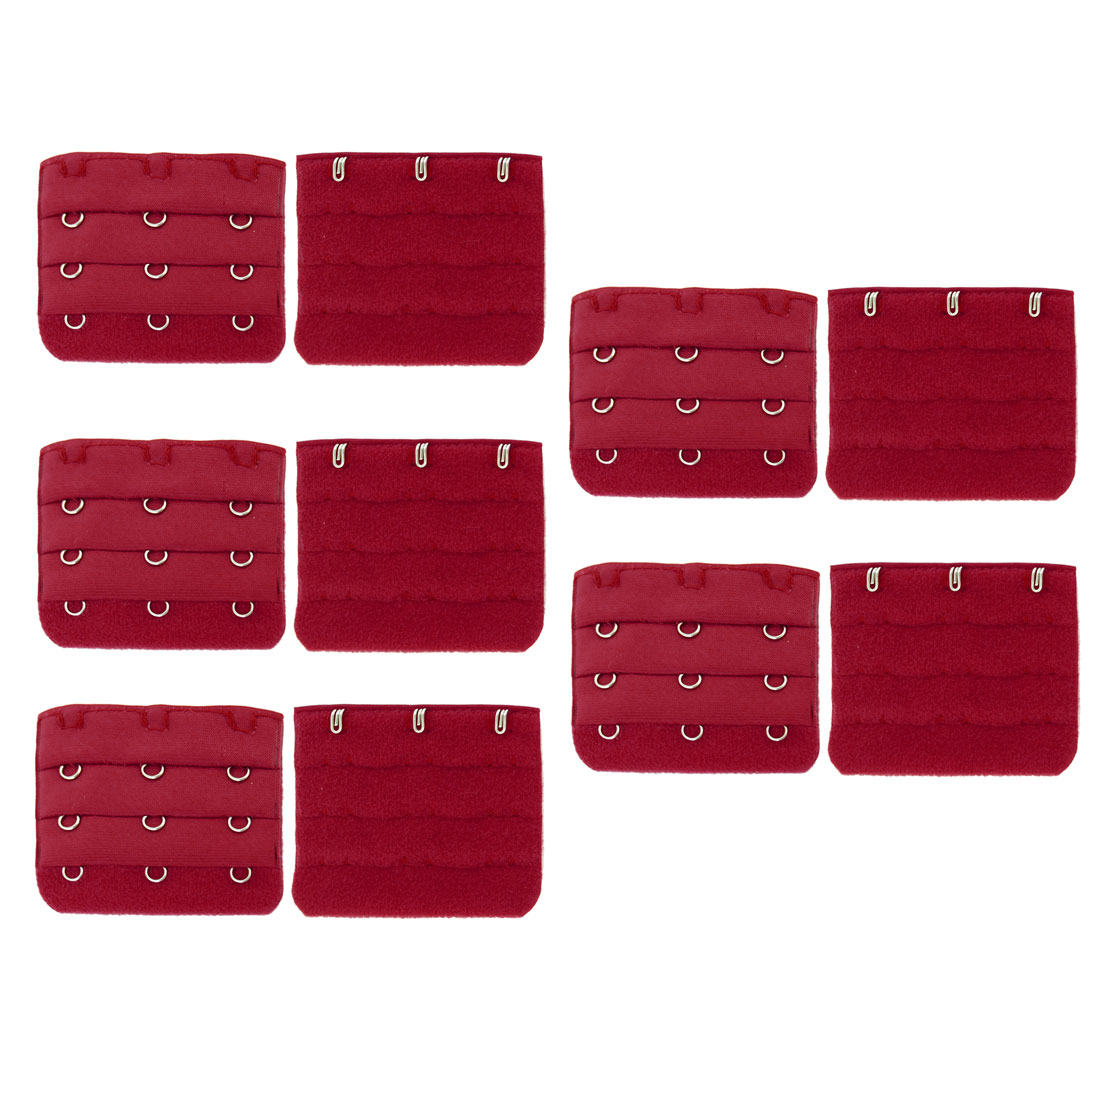 10 Pcs Lady 3 x 3 Hook Bra Extenders Strap Extension Dark Red